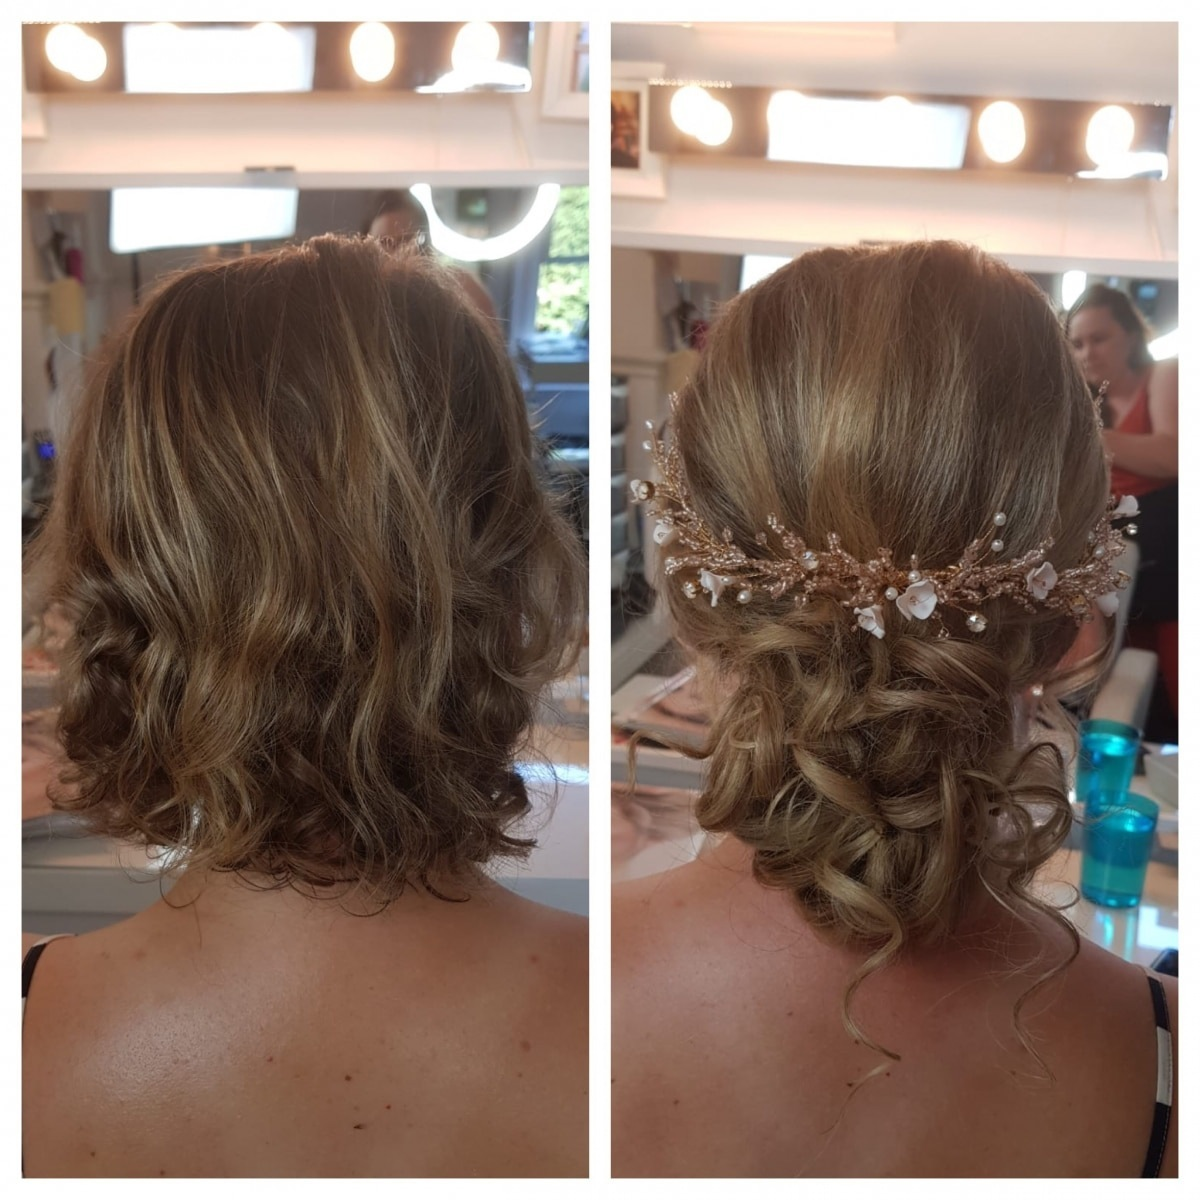 Before and After Wedding Hair - Gemma Sutton Pro Team xx